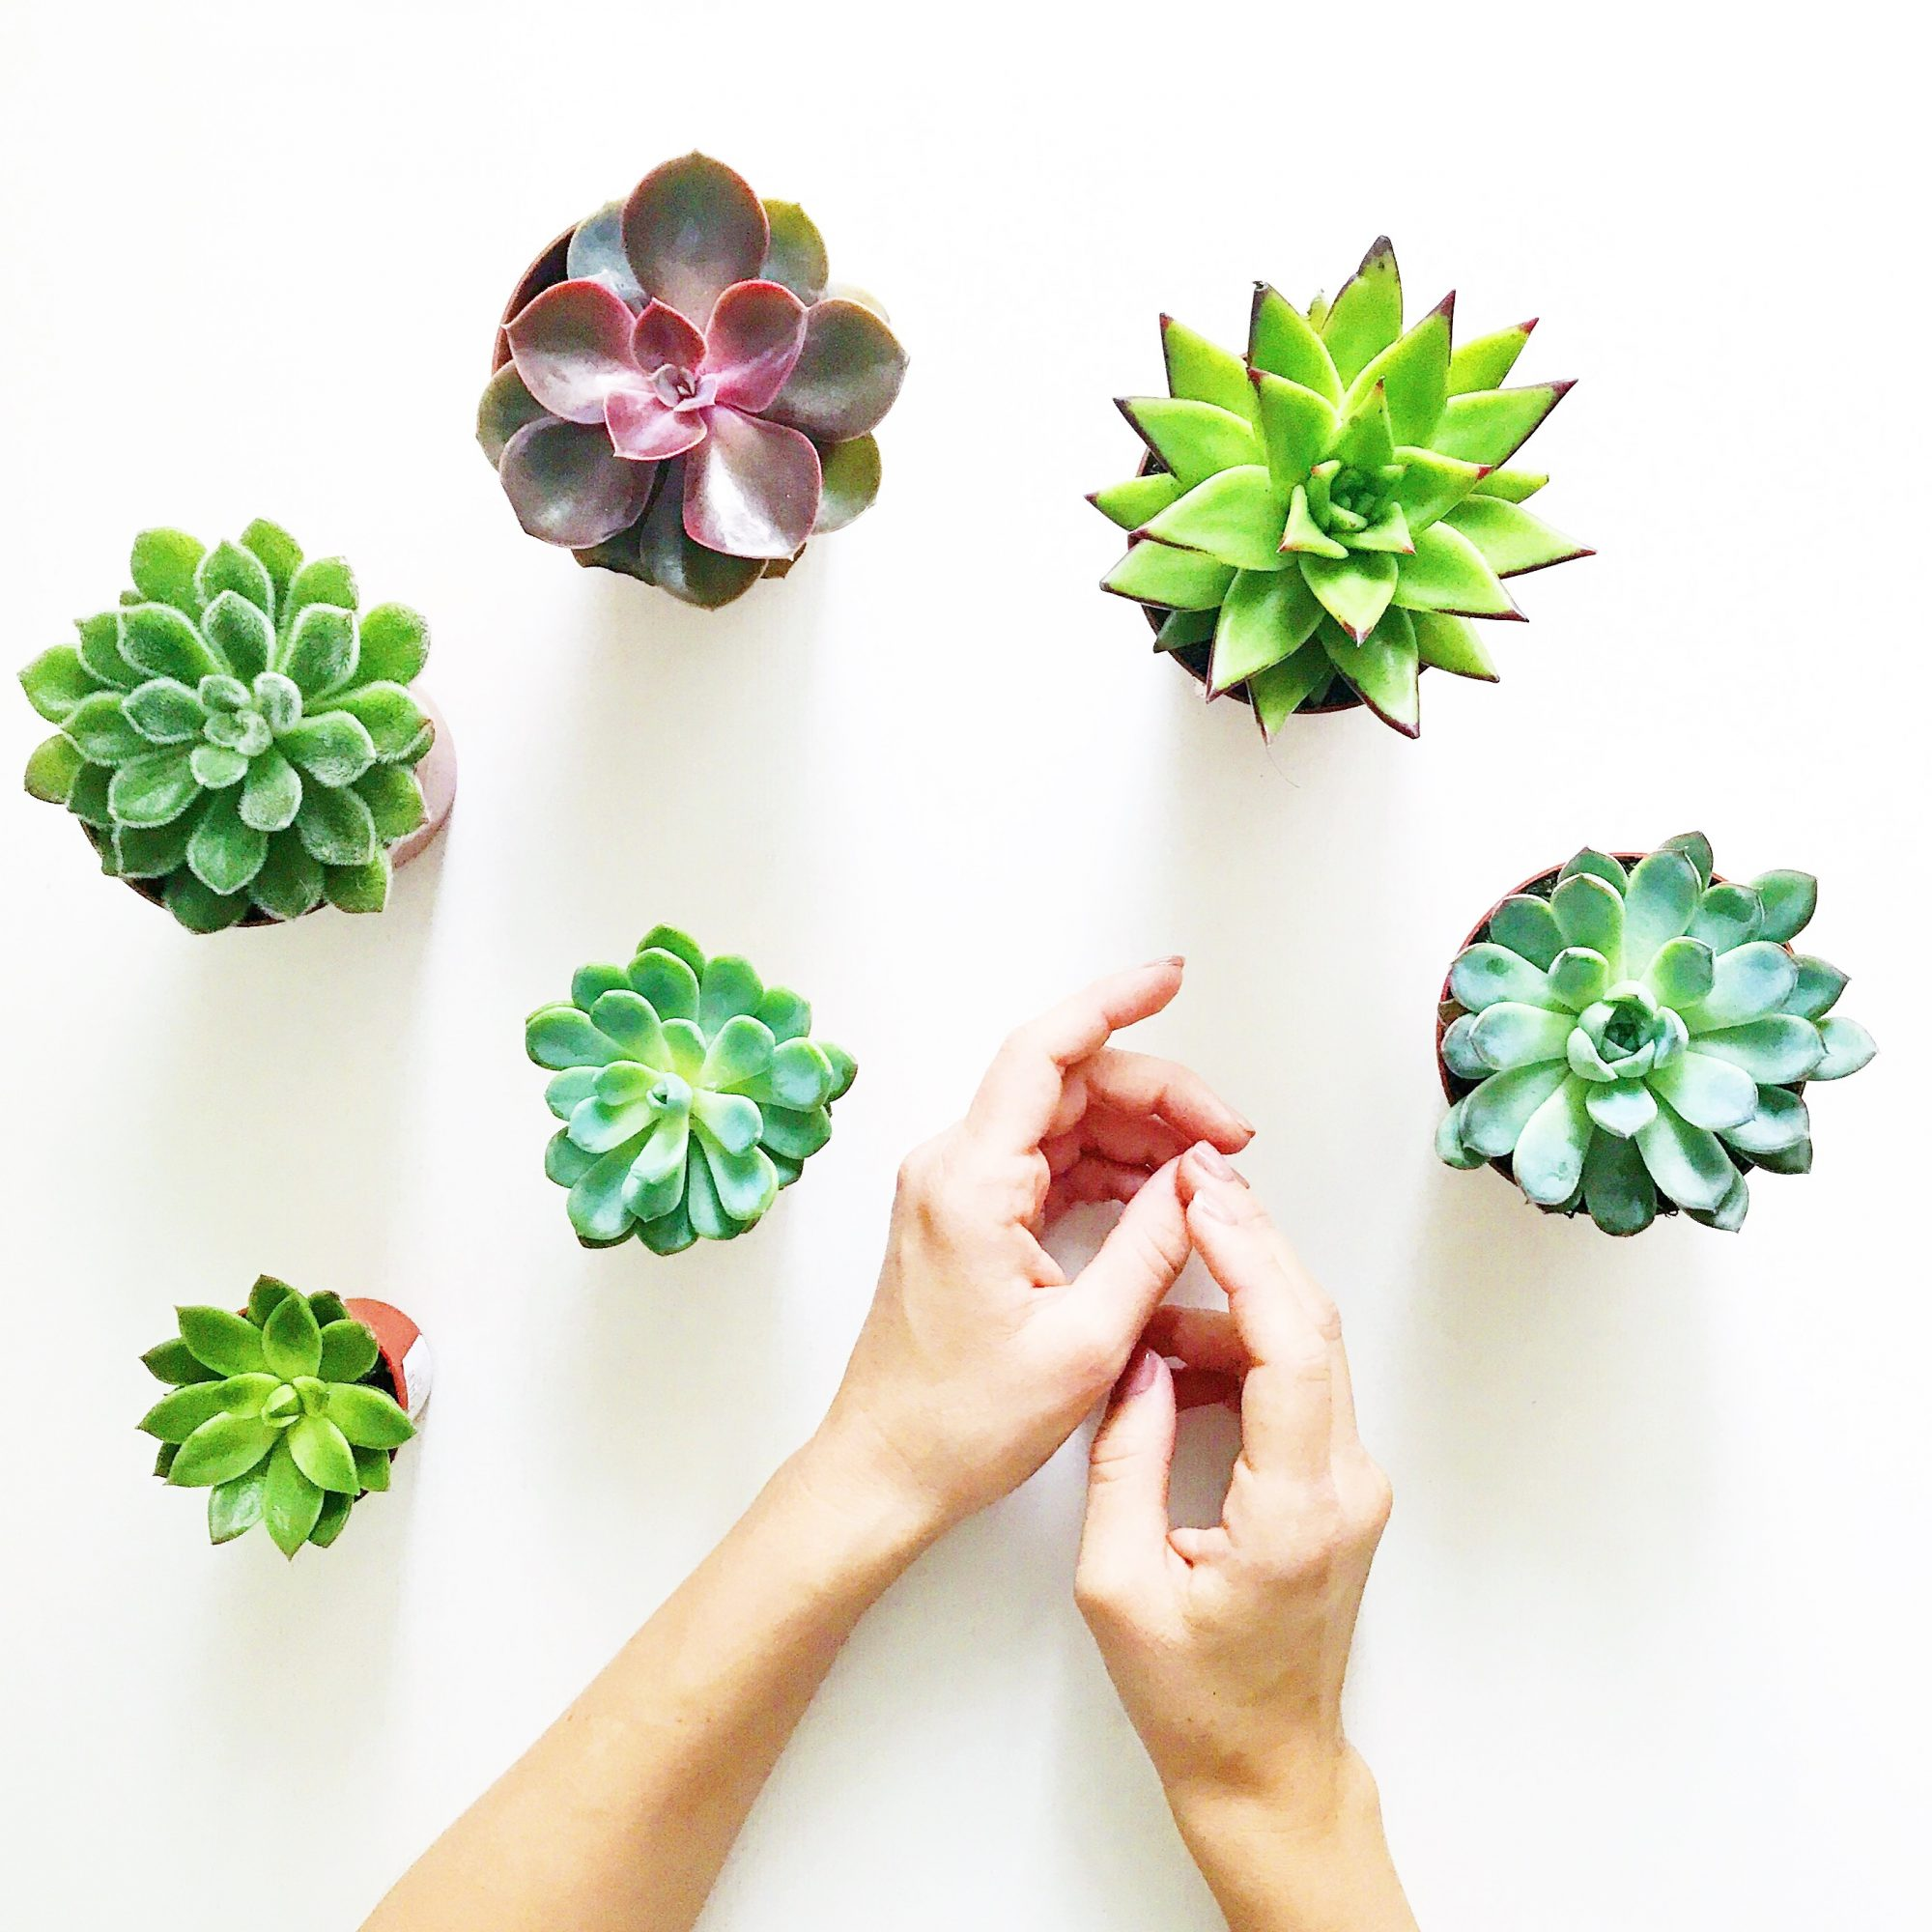 Cropped Hands Of Woman With Potted Succulent Plants Against White Background